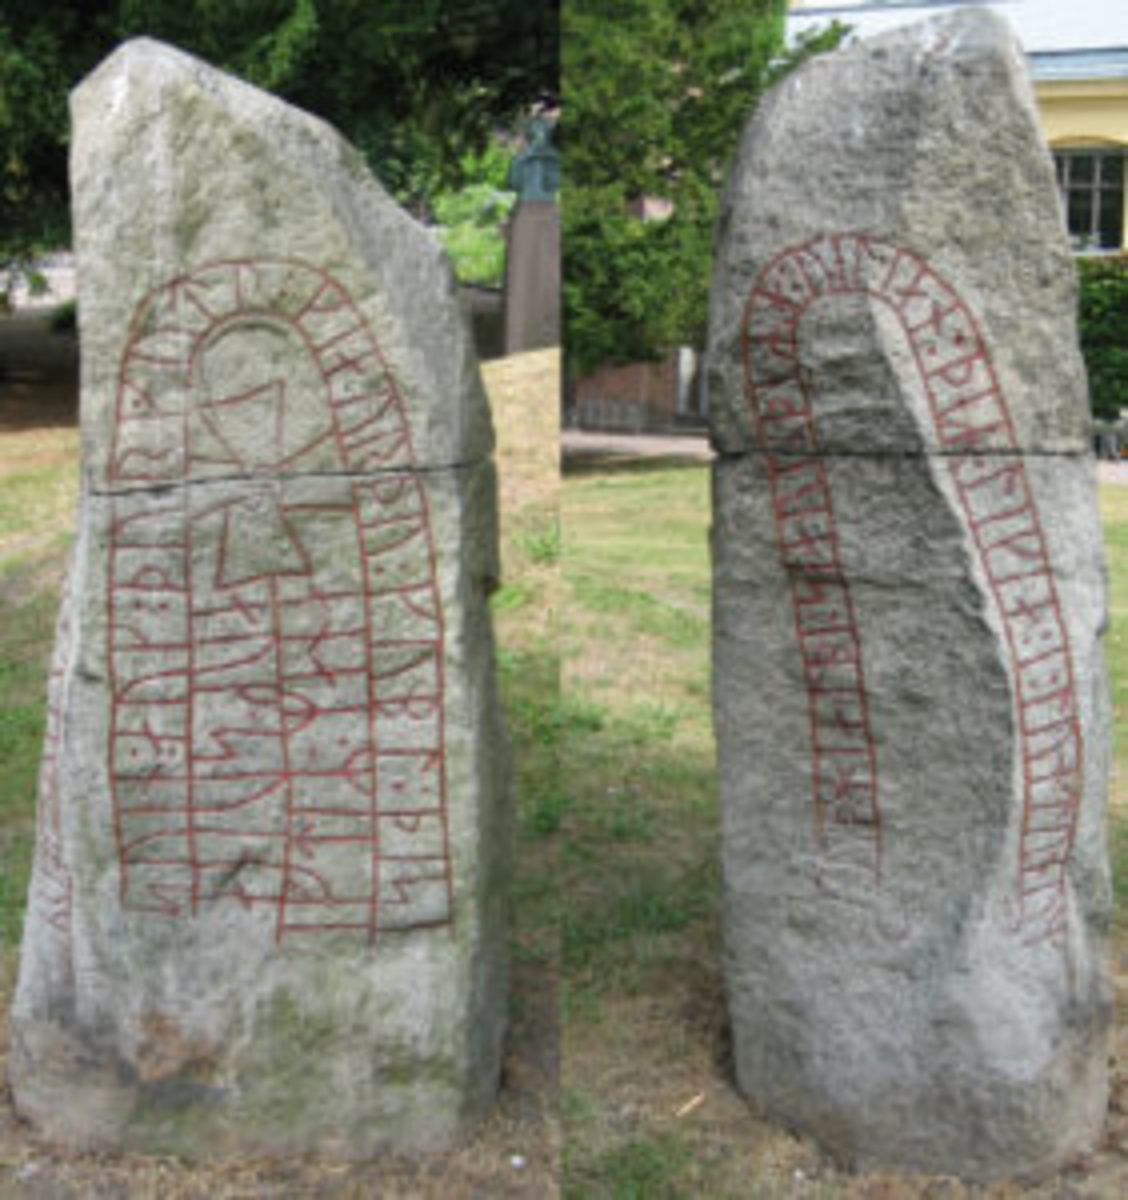 The Valleberga Runestone, Sweden, reports that two Vikings had died in London. Photo by Hedning - Own work, CC BY-SA 3.0,